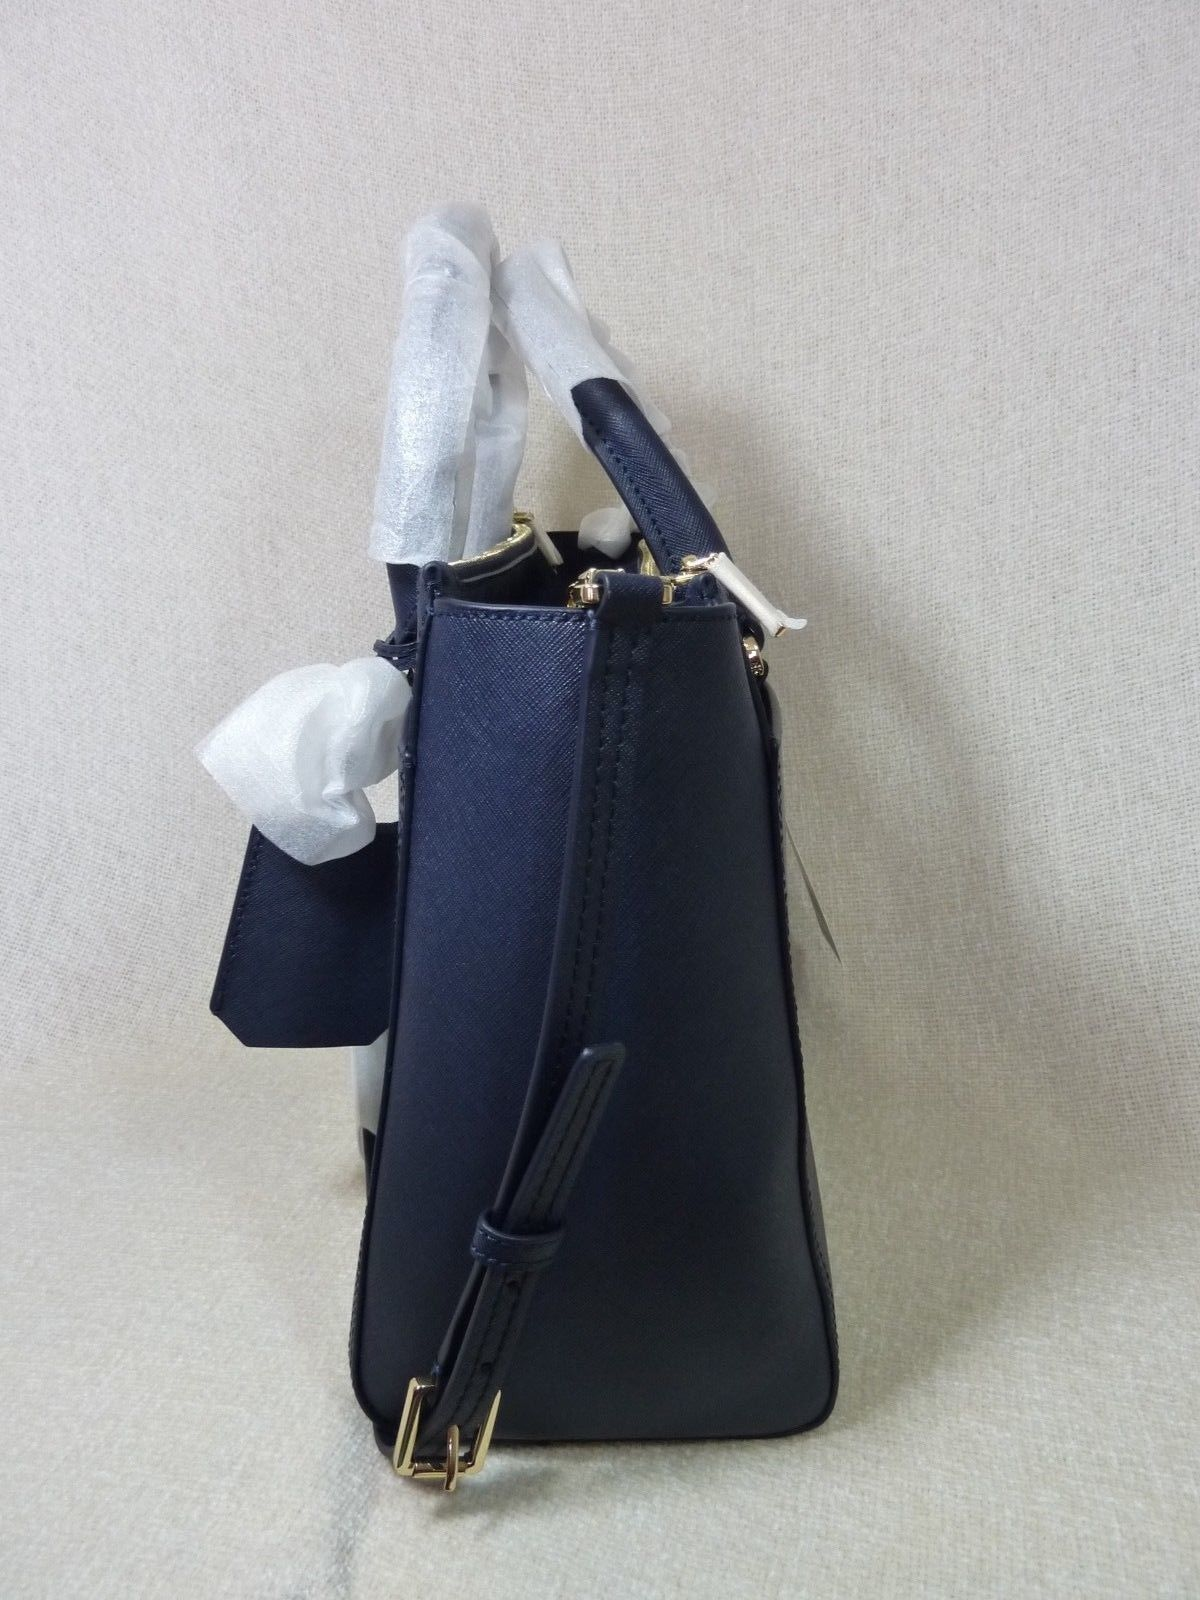 Tory Burch Navy Blue Saffiano Leather Robinson Double-Zip Tote $458 image 3